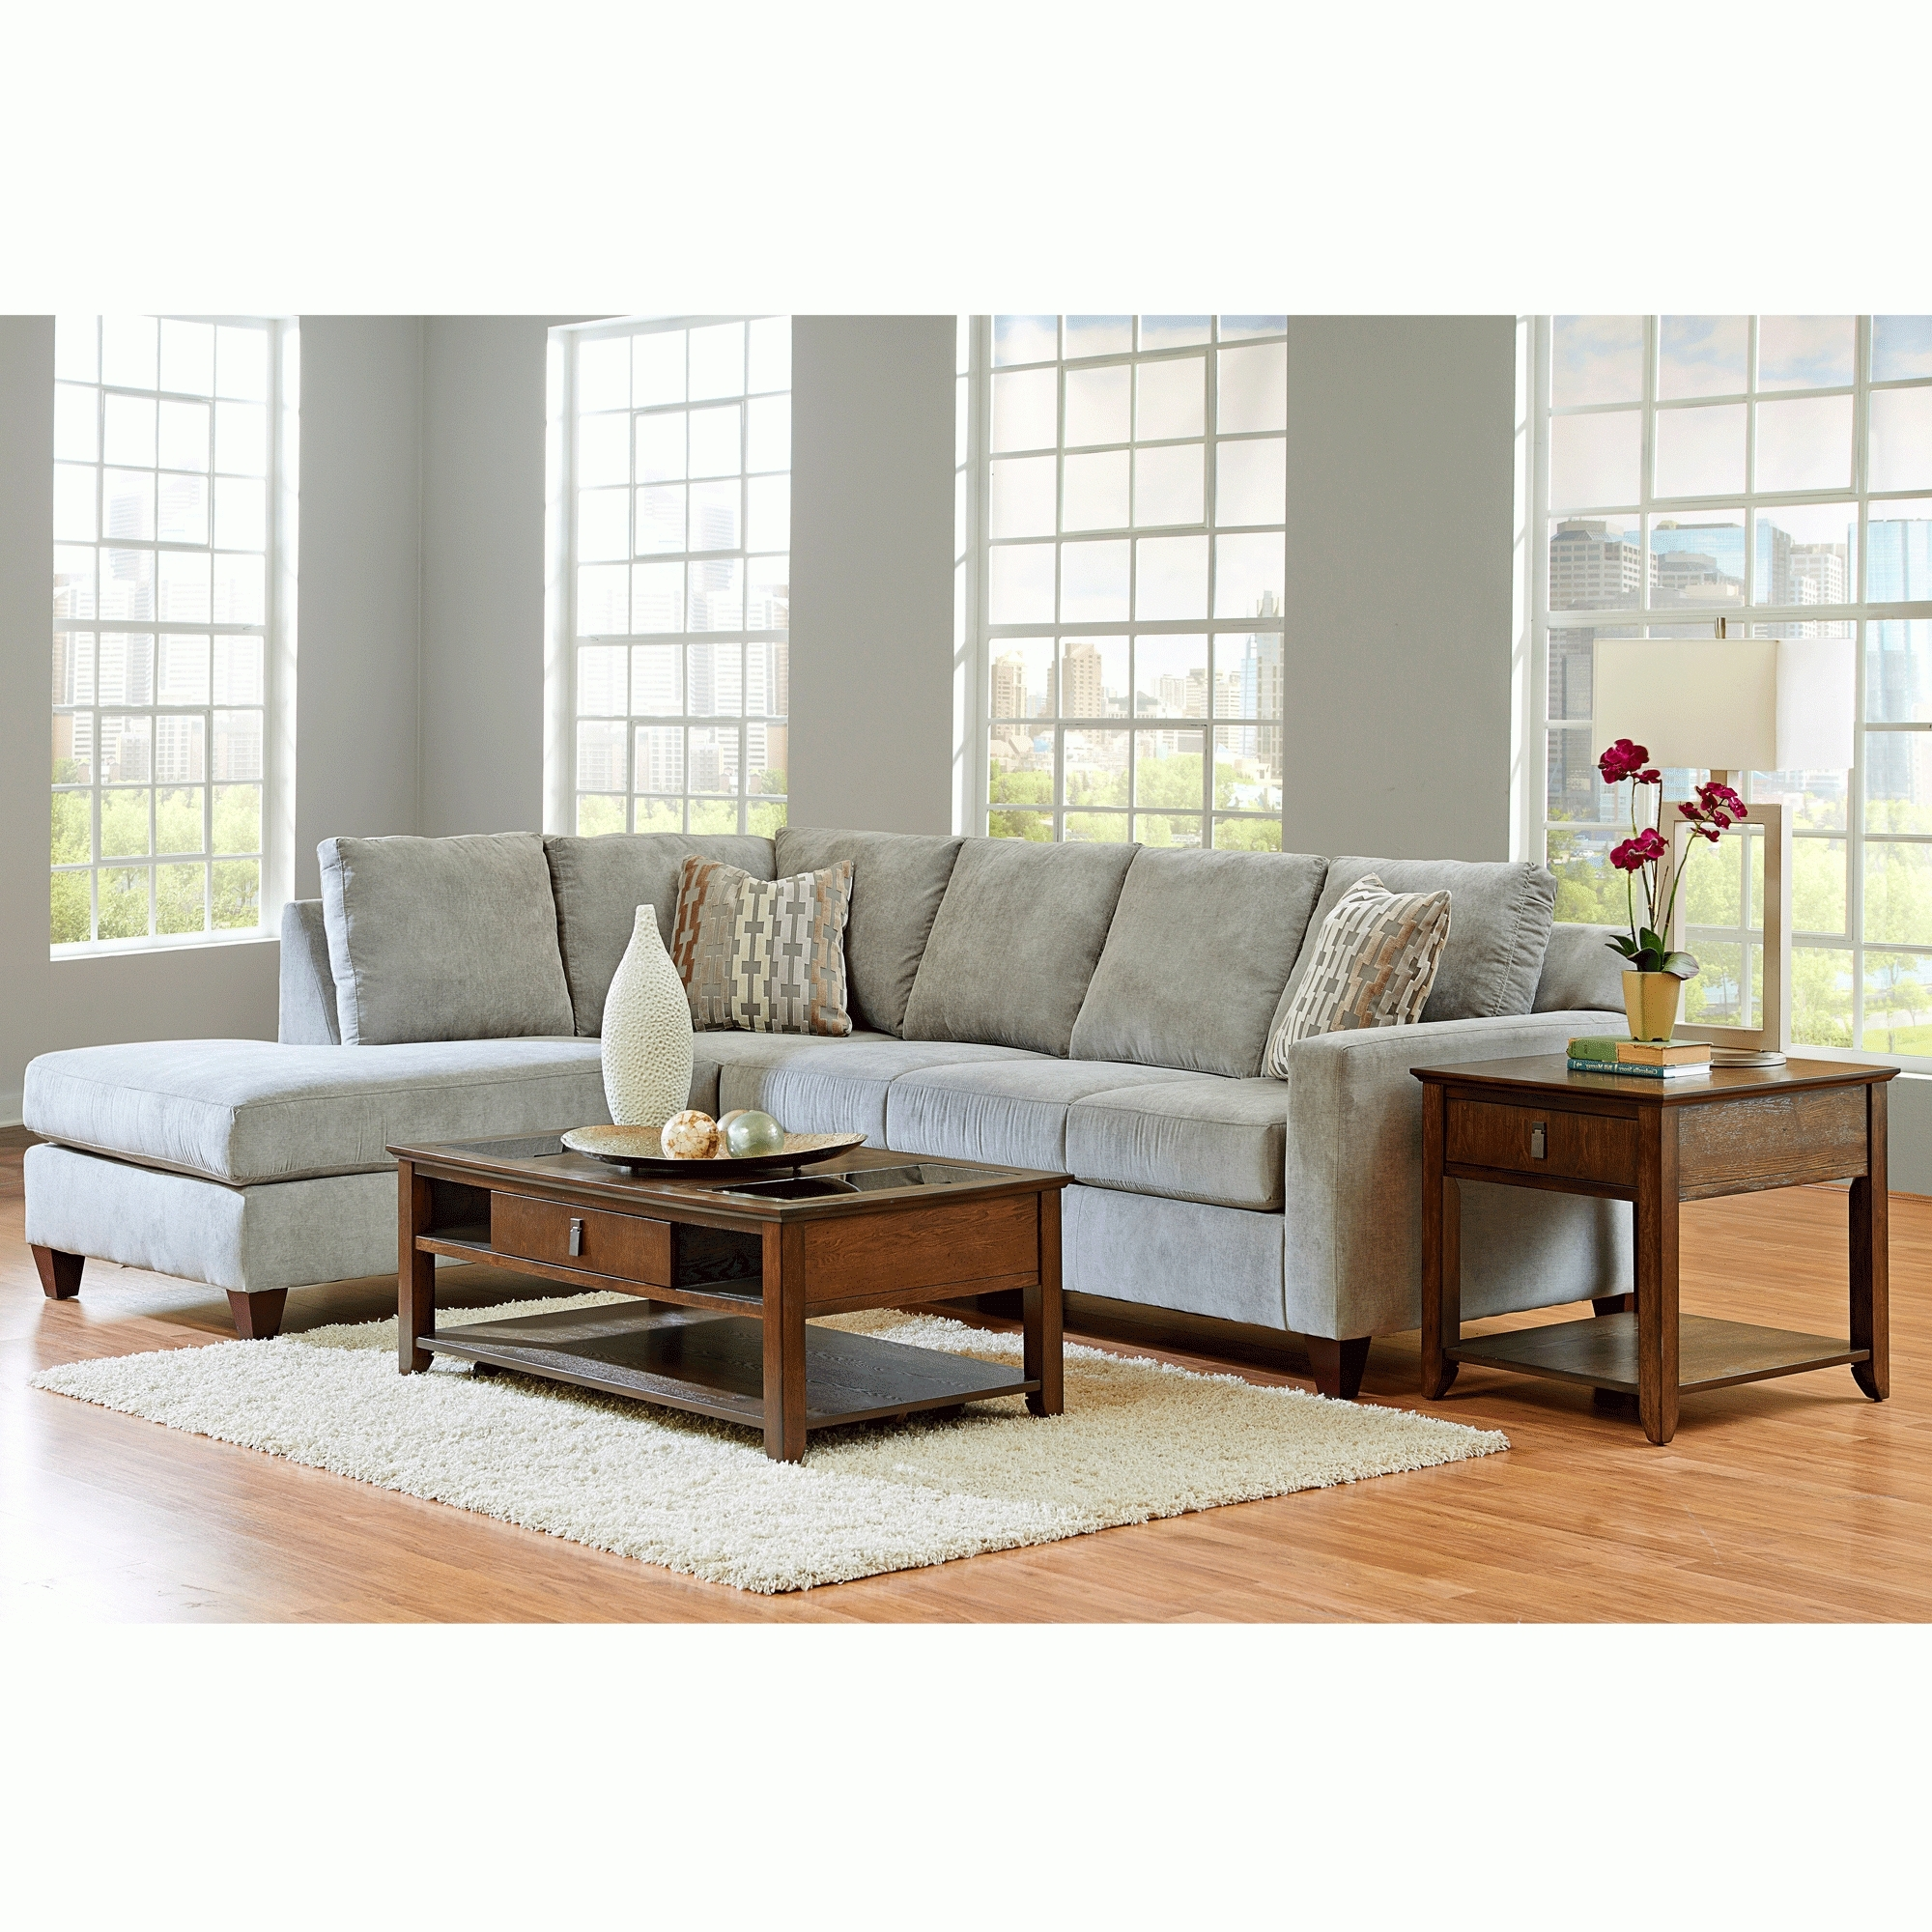 Famous Nashua Nh Sectional Sofas With Regard To Sectional Sofas (View 10 of 20)